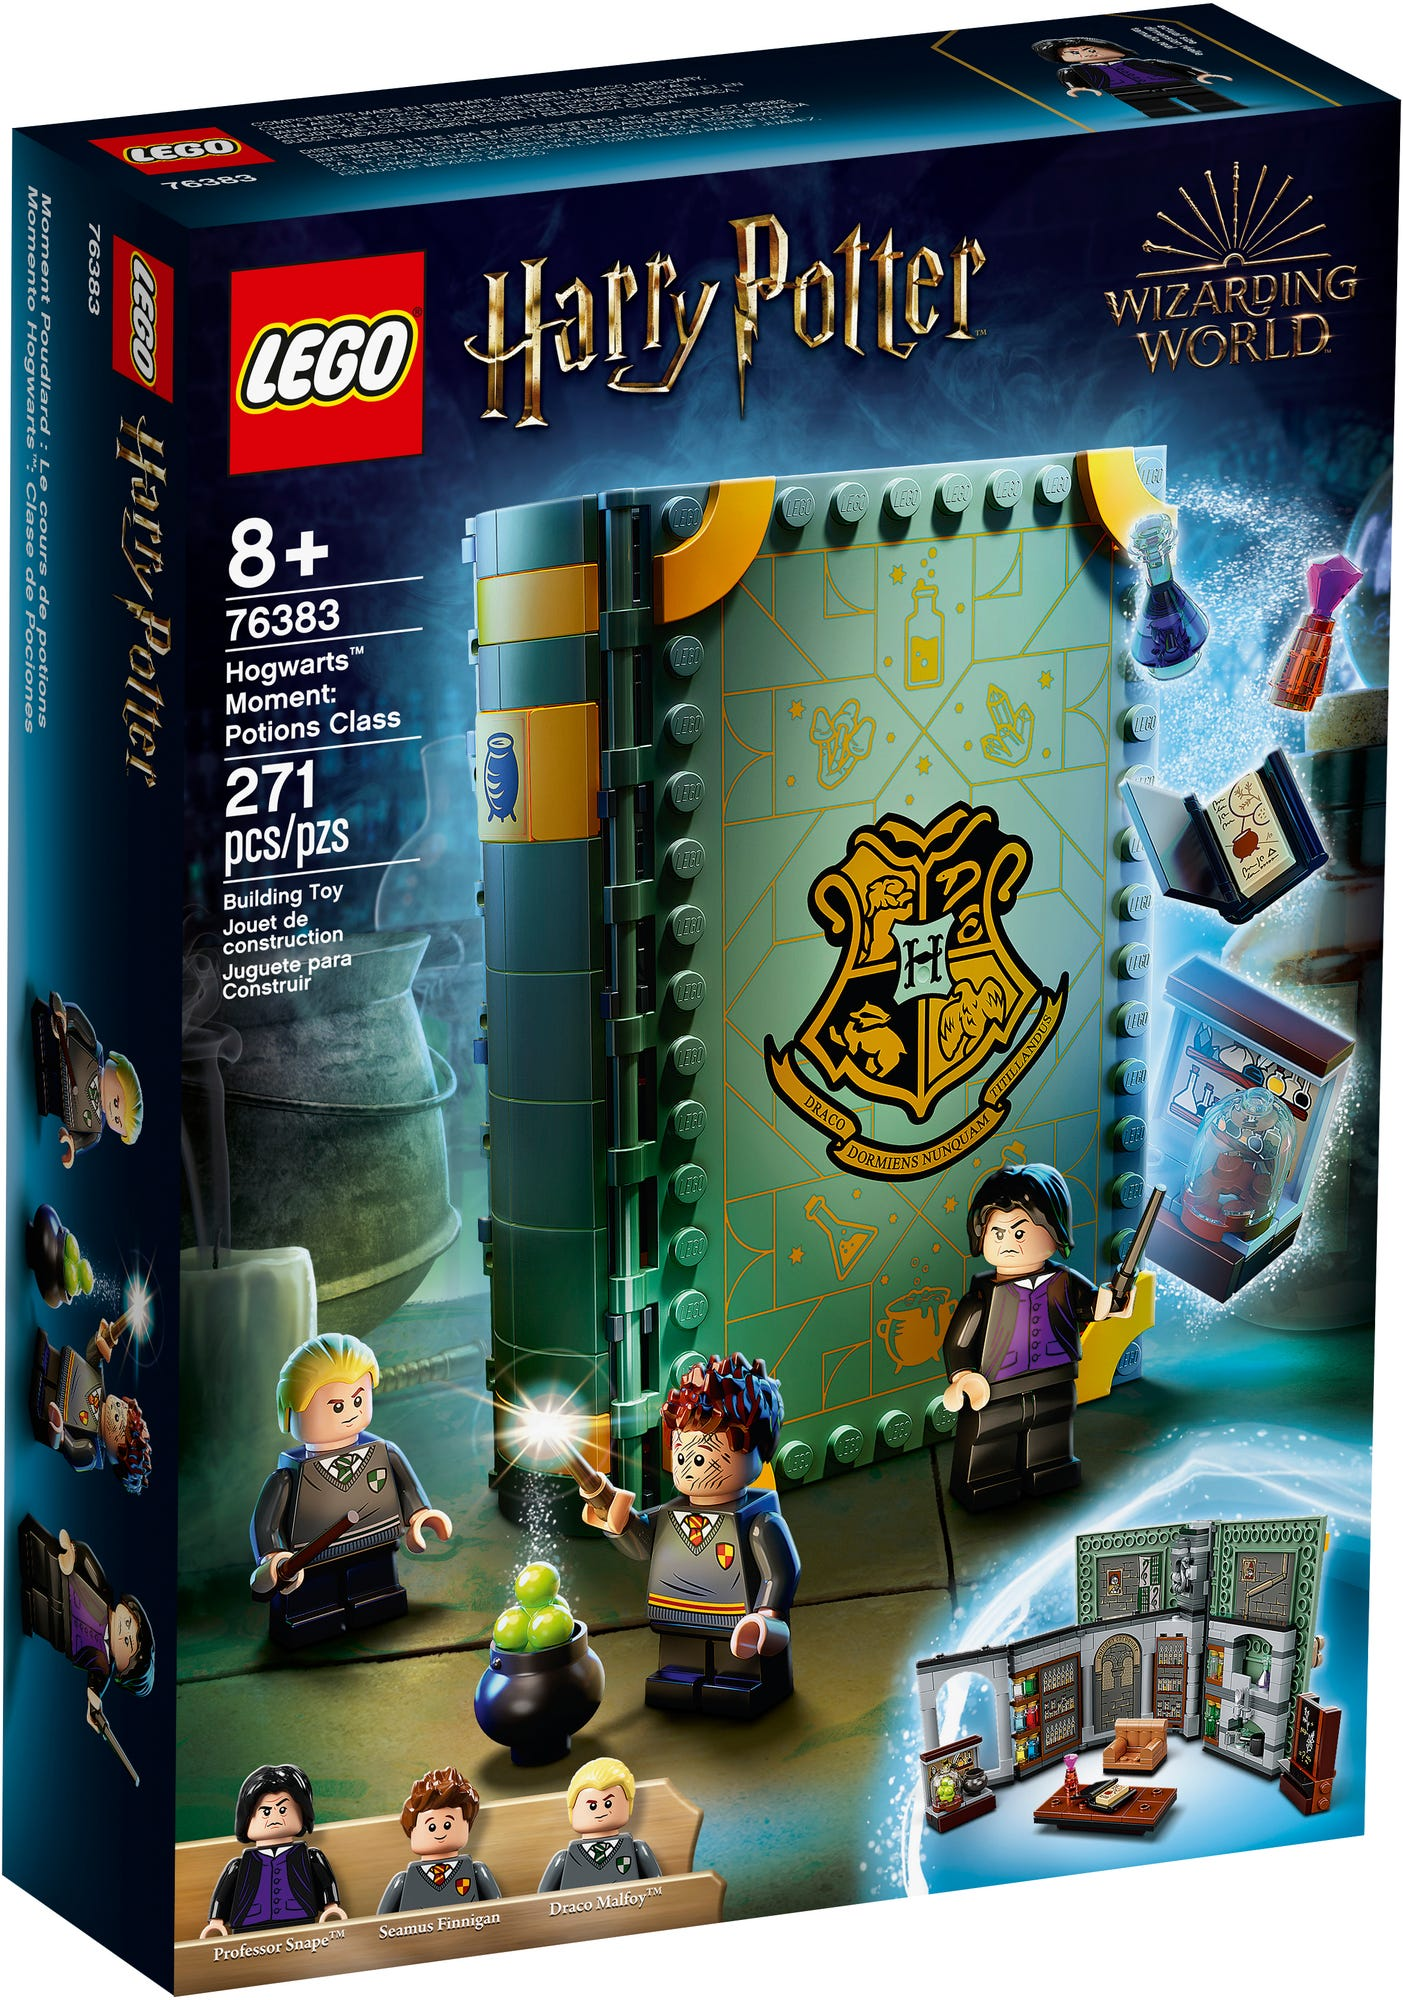 LEGO Harry Potter 76383 Zaubertrankunterricht (2)